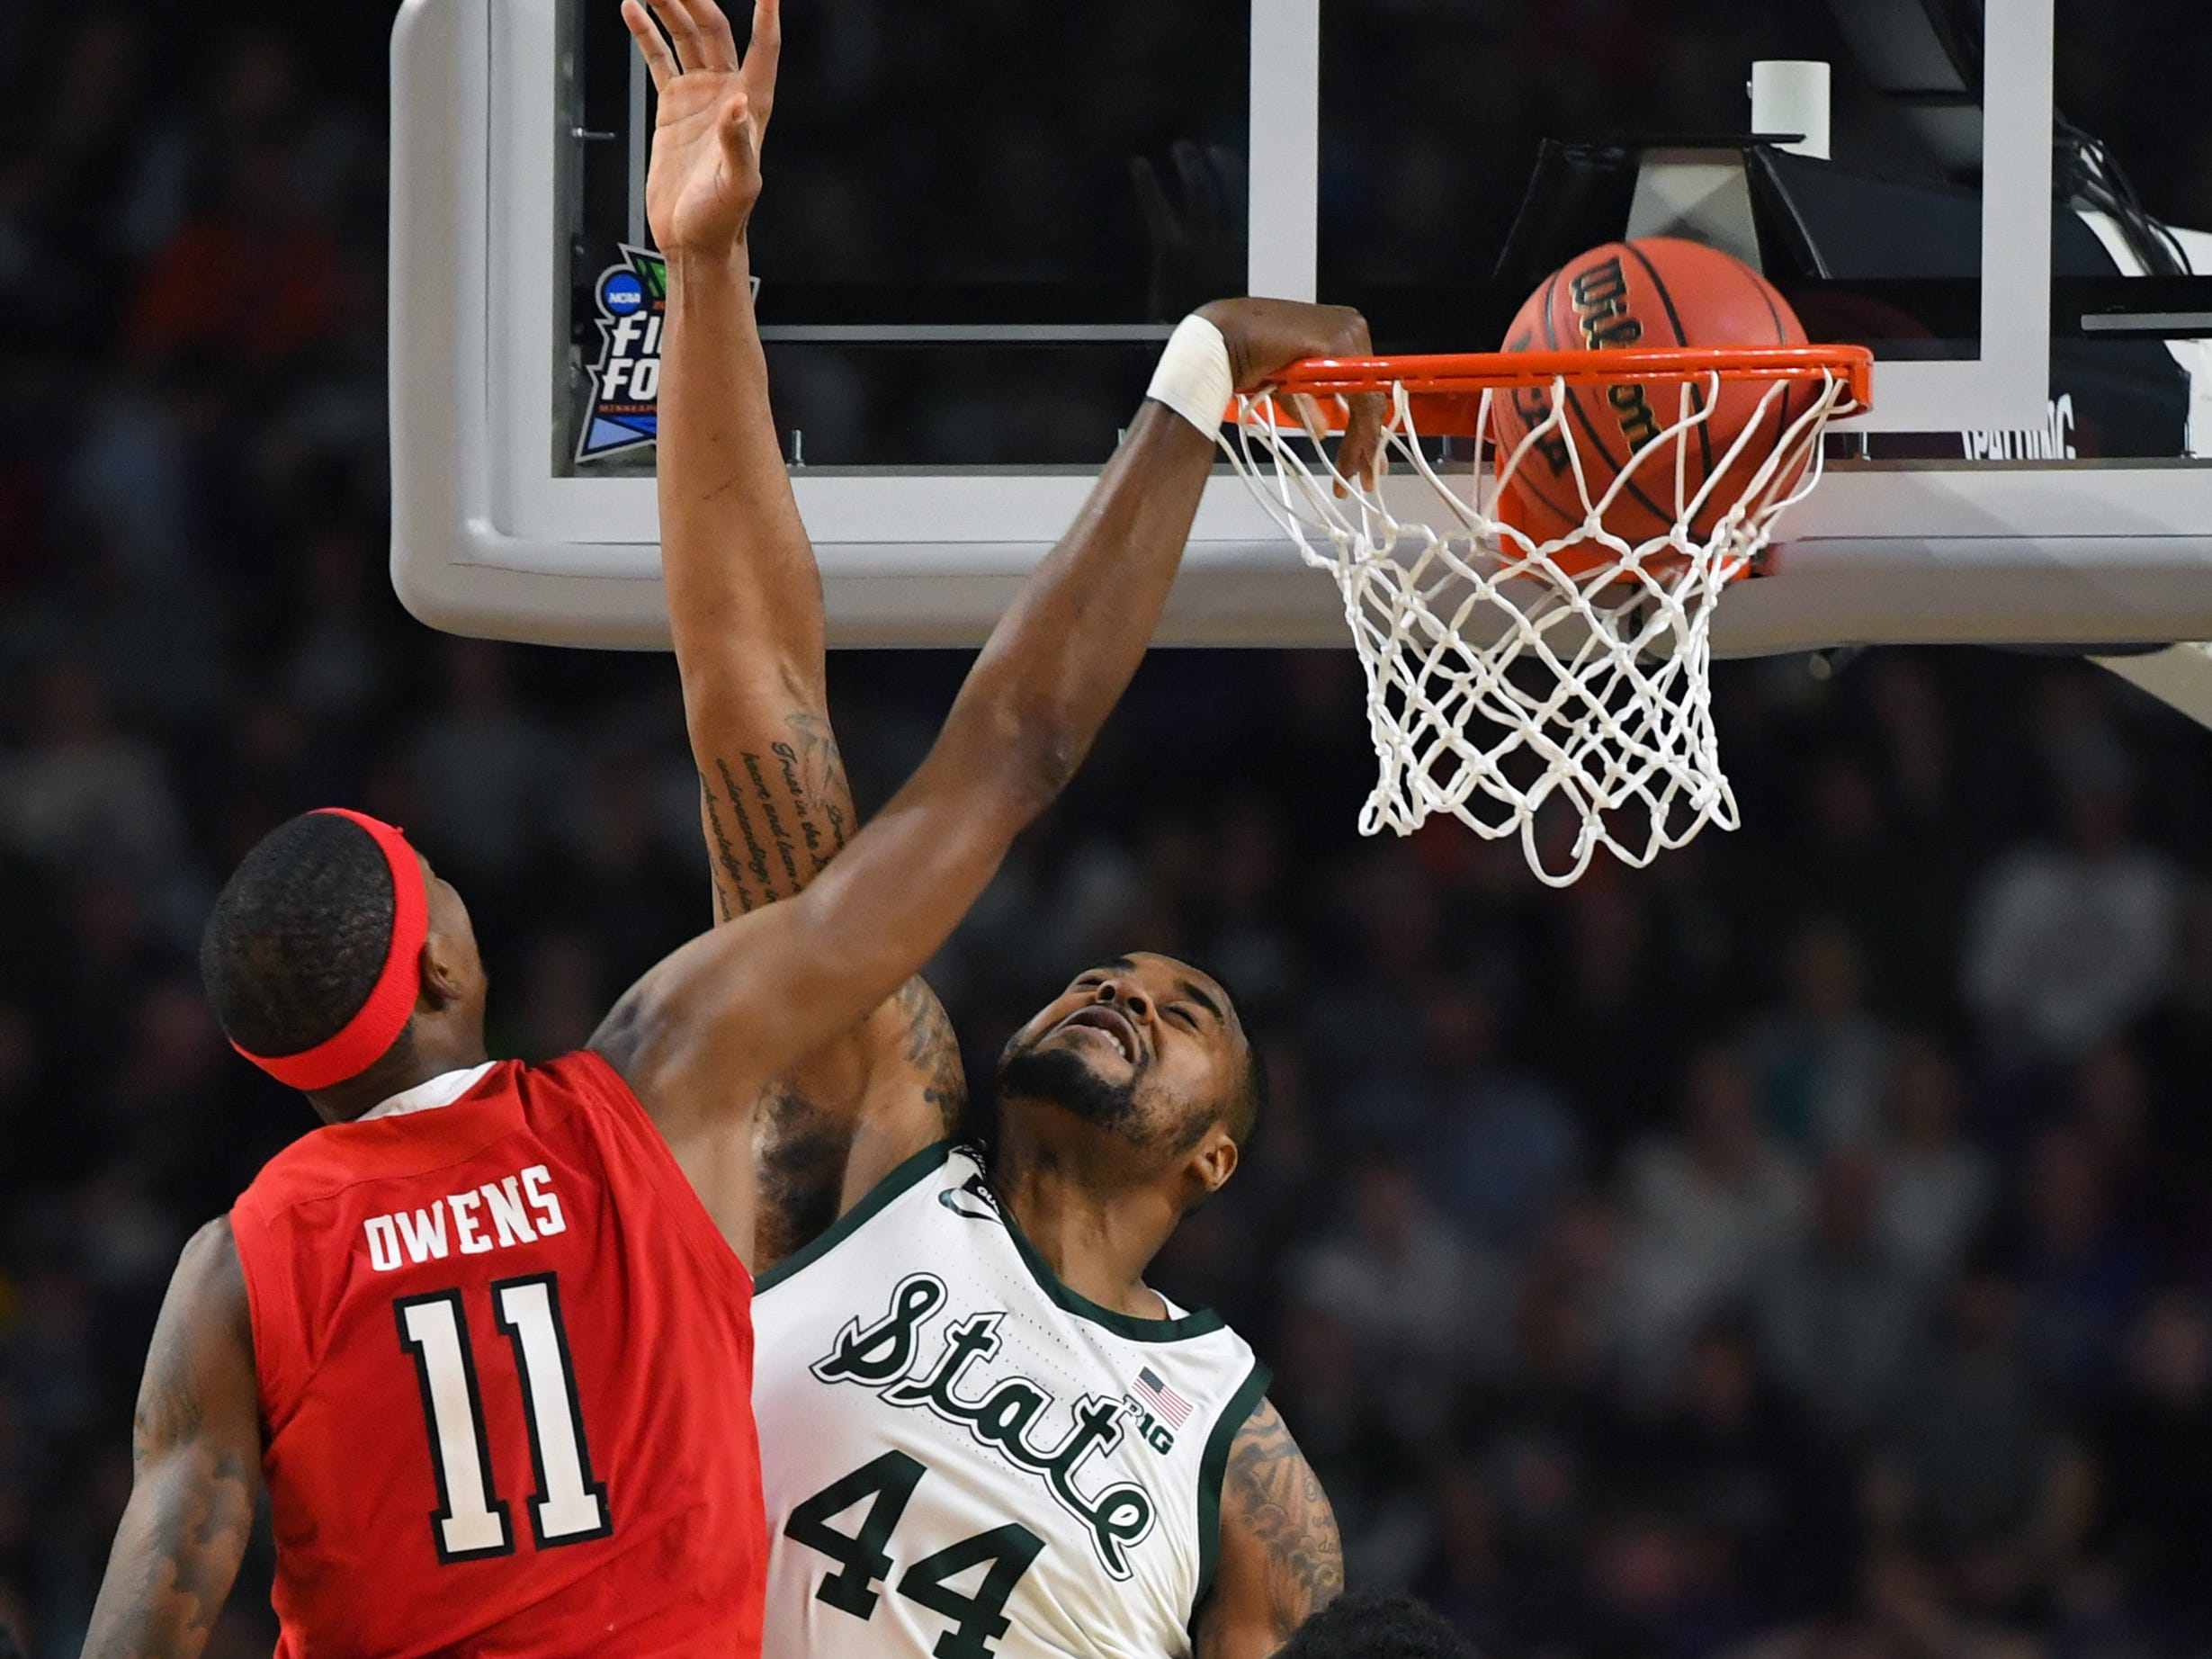 Apr 6, 2019; Minneapolis, MN, USA; Texas Tech Red Raiders forward Tariq Owens (11) dunks the ball over Michigan State Spartans forward Nick Ward (44) in the semifinals of the 2019 men's Final Four at US Bank Stadium. Mandatory Credit: Robert Deutsch-USA TODAY Sports